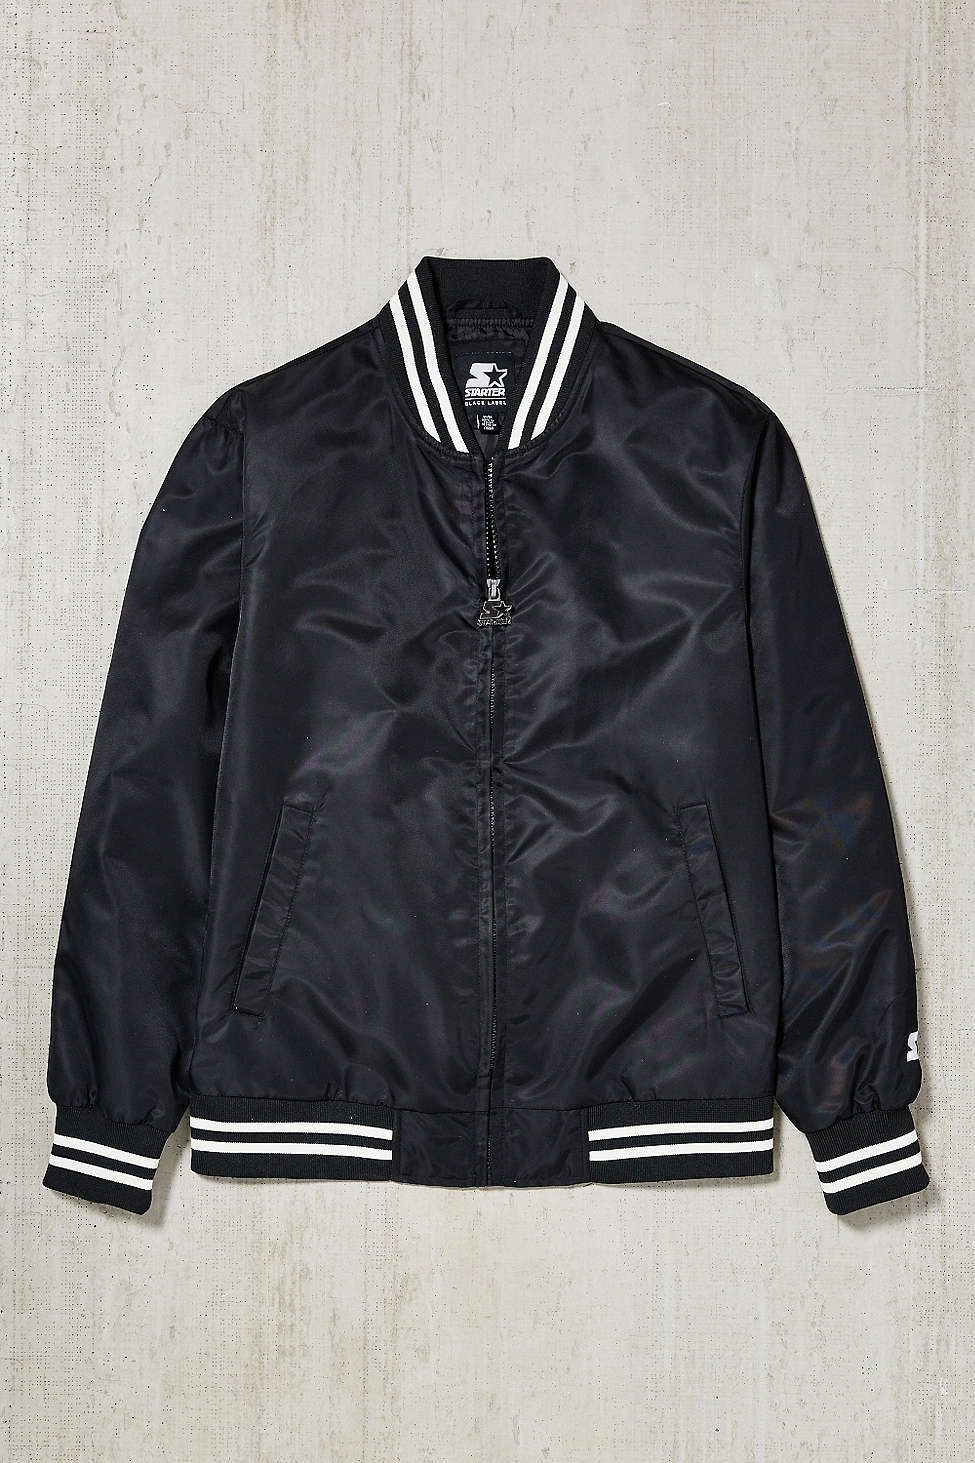 It is a graphic of Nifty Starter Black Label Jacket Urban Outfitters